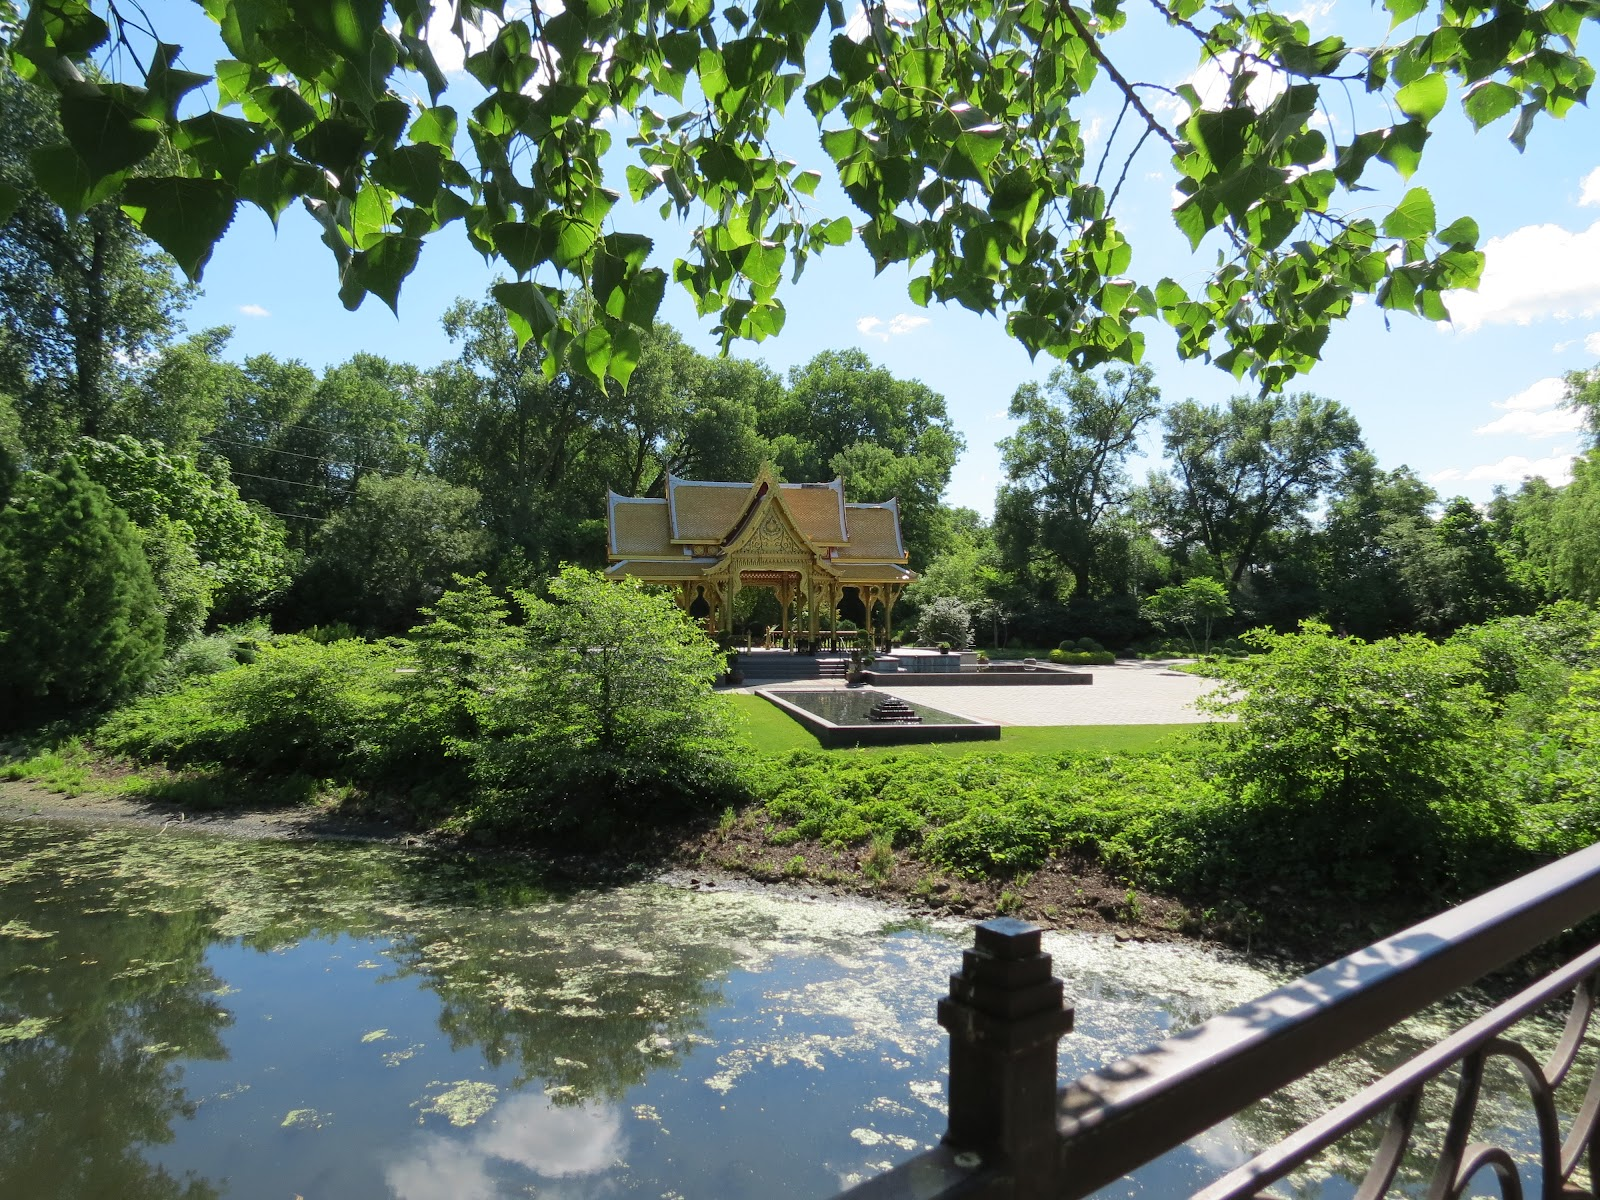 Our nature the thai pavilion for Olbrich botanical gardens hours